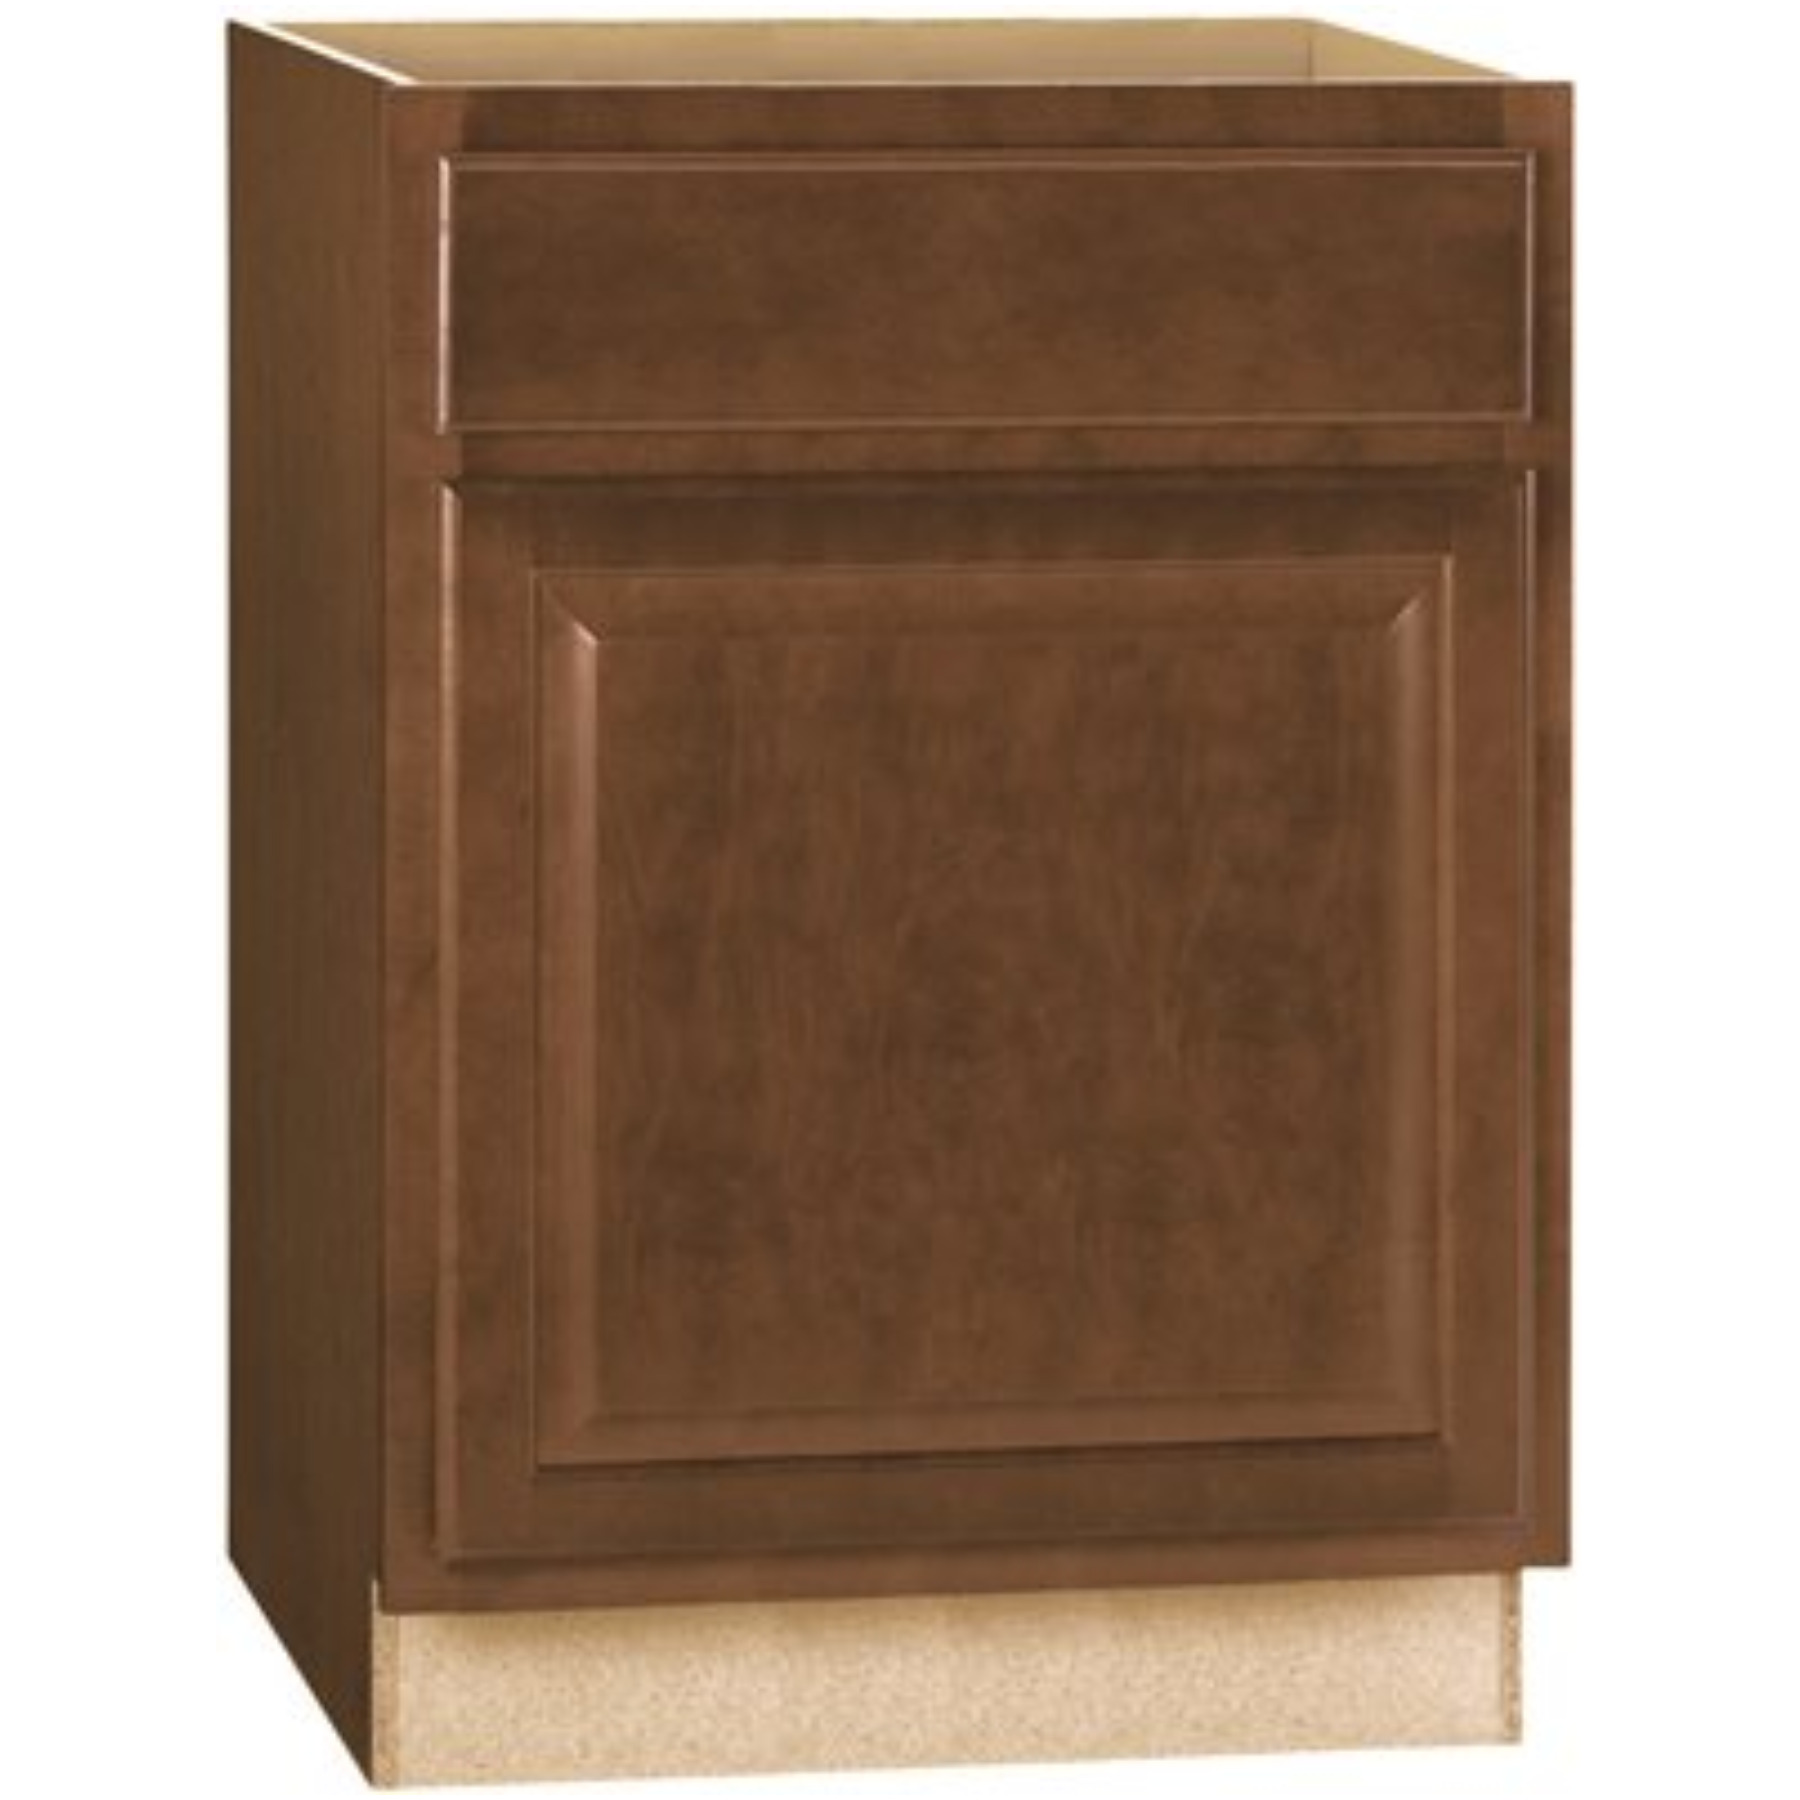 RSI HOME PRODUCTS HAMILTON BASE CABINET, FULLY ASSEMBLED, RAISED PANEL, CAFE, 24X34-1/2X24 IN.